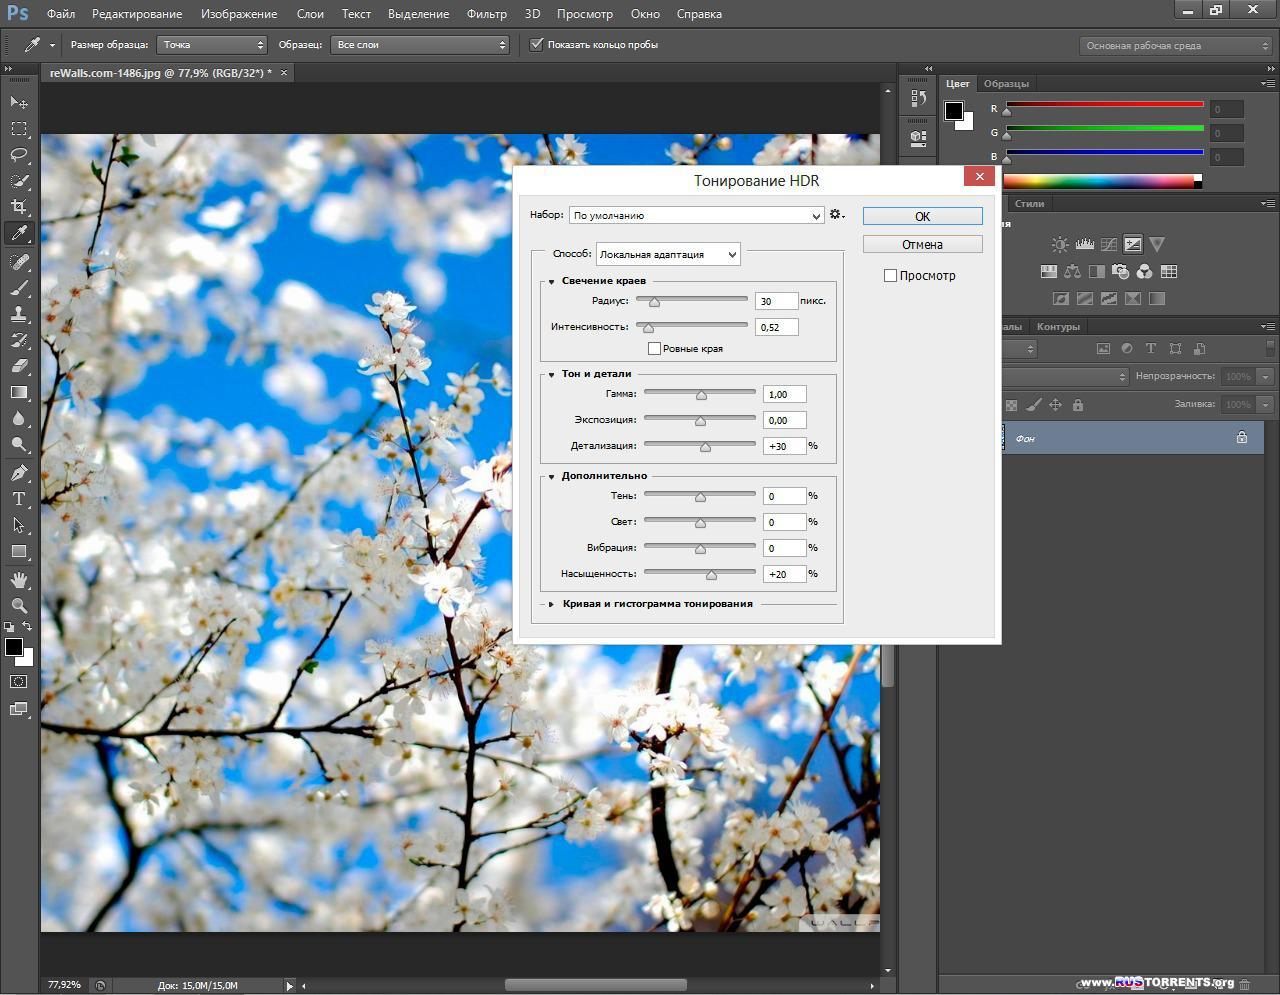 Adobe Photoshop CS6 13.1.2 Extended